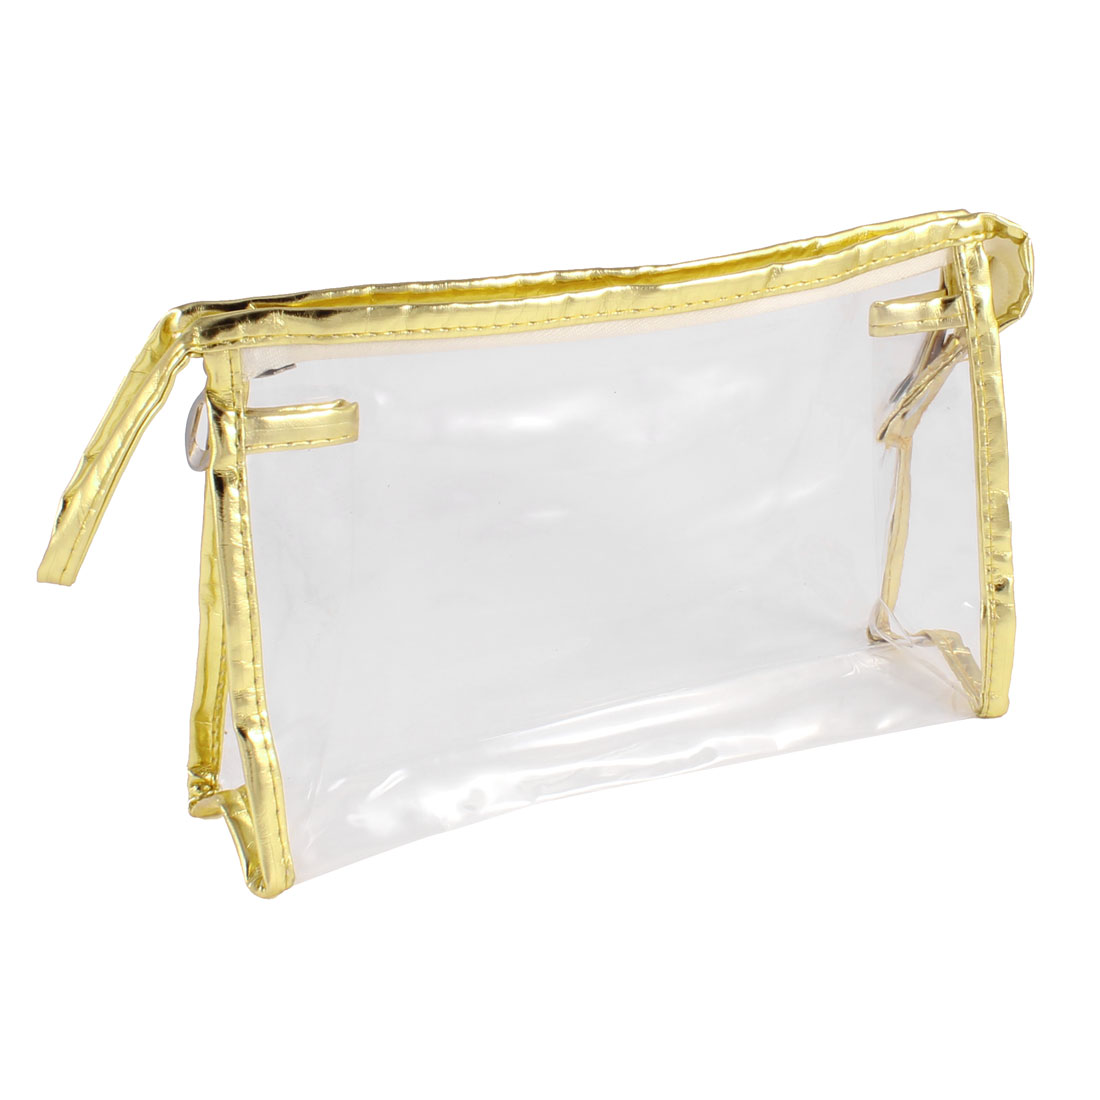 Zipper Closure Gold Tone Faux Leather Frame Cosmetic Bag Pouch 21.5cmx6.5cmx13cm